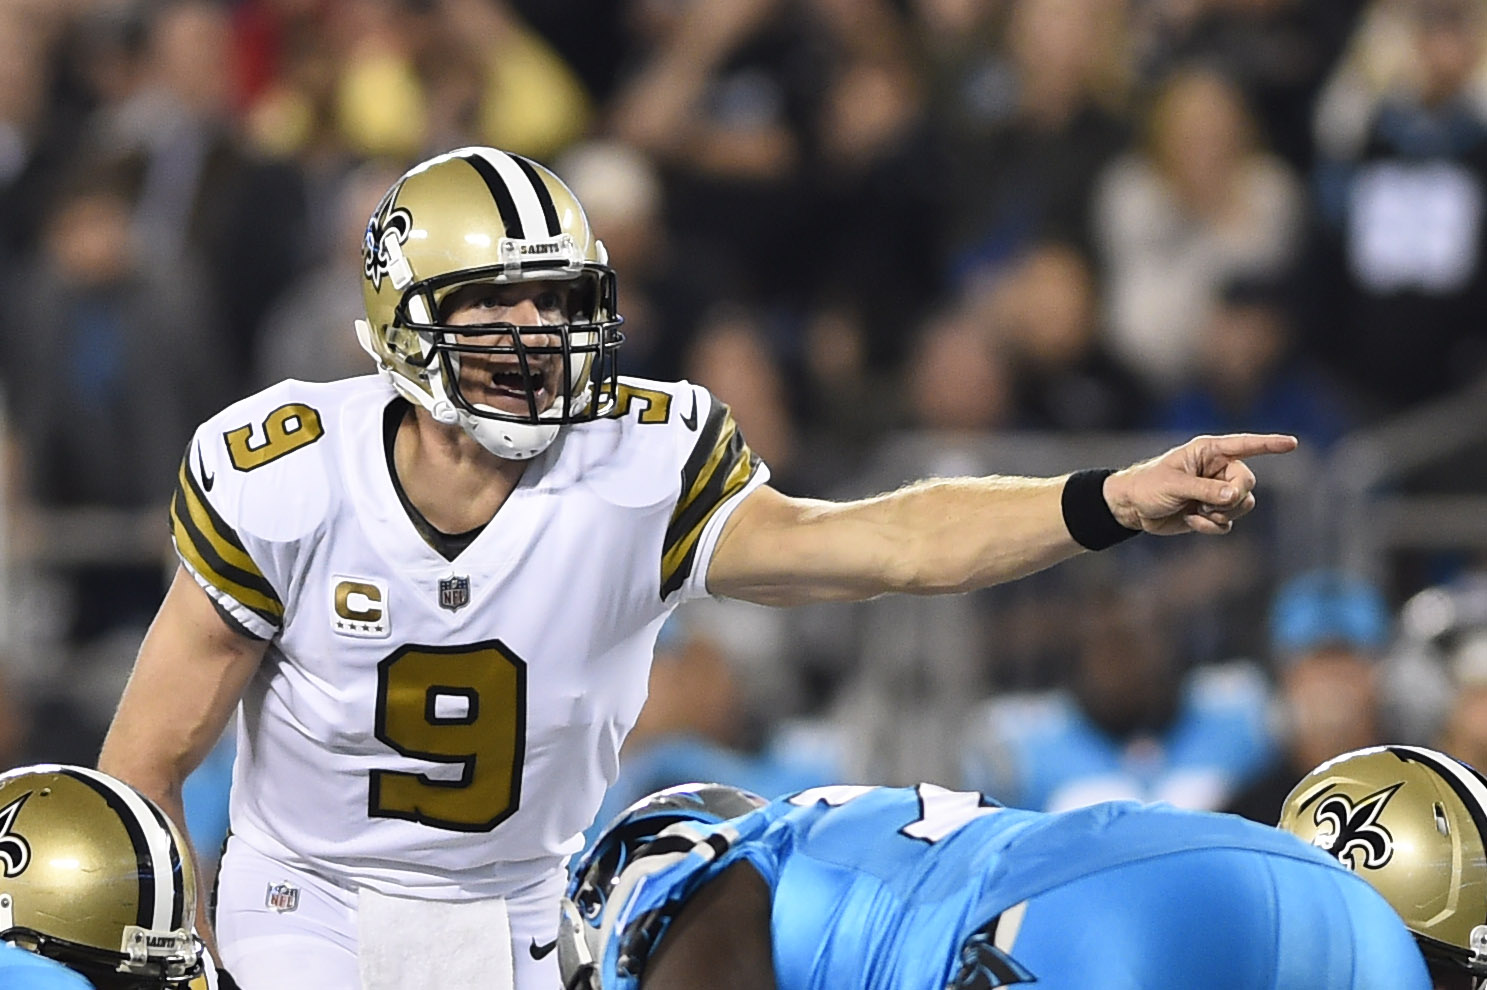 Nov 17, 2016; Charlotte, NC, USA; New Orleans Saints quarterback Drew Brees (9) at the line of scrimmage in the first quarter at Bank of America Stadium. Mandatory Credit: Bob Donnan-USA TODAY Sports